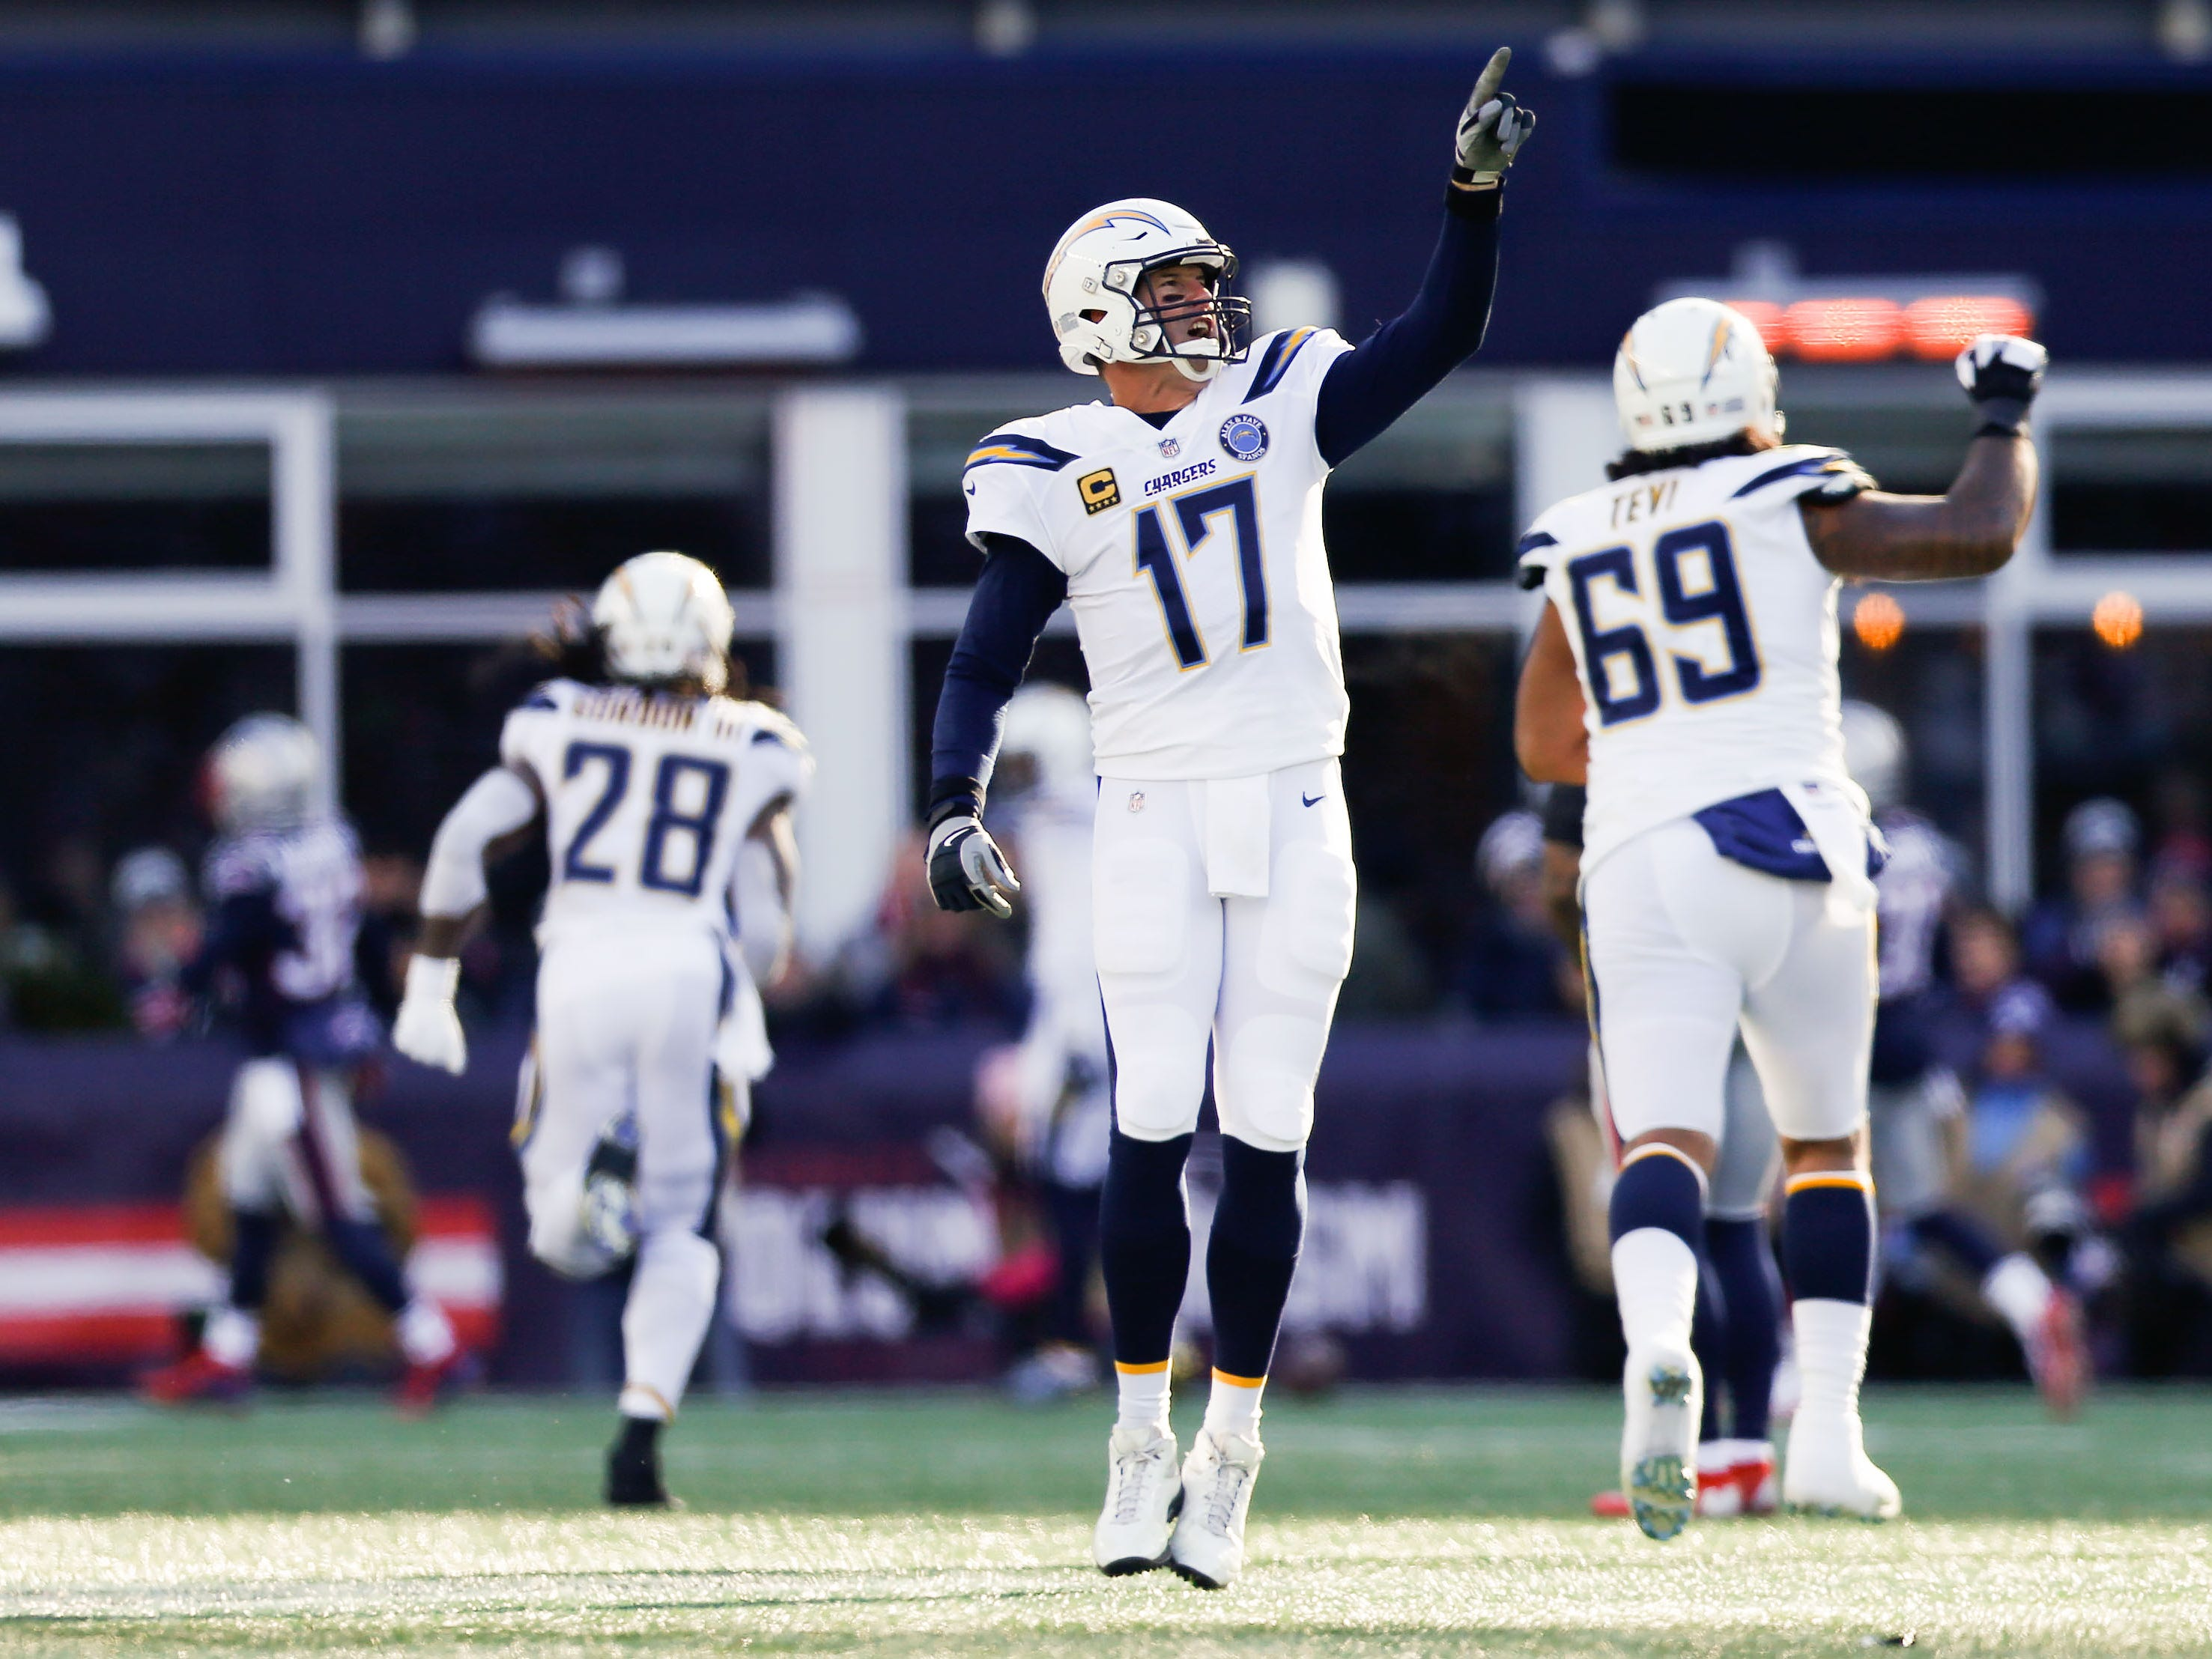 Los Angeles Chargers quarterback Philip Rivers (17) reacts after a touchdown against the New England Patriots during the first quarter in an AFC Divisional playoff football game at Gillette Stadium.